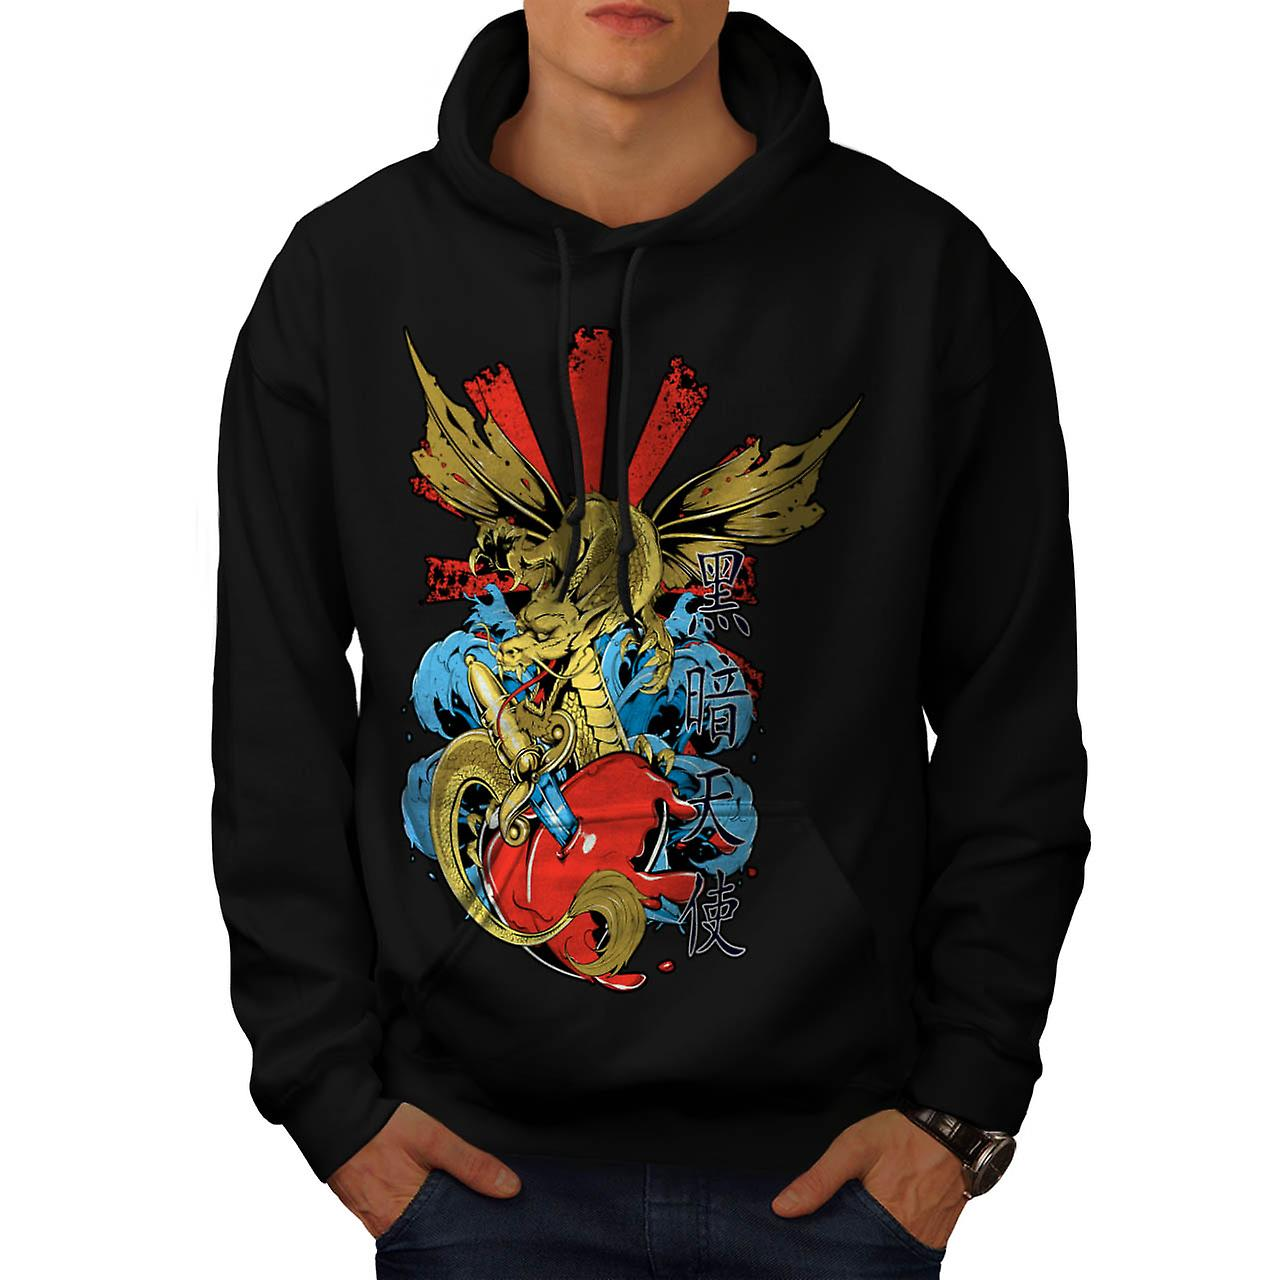 Monster Dragon Heart Love Hurts Männer Hoodie schwarz | Wellcoda